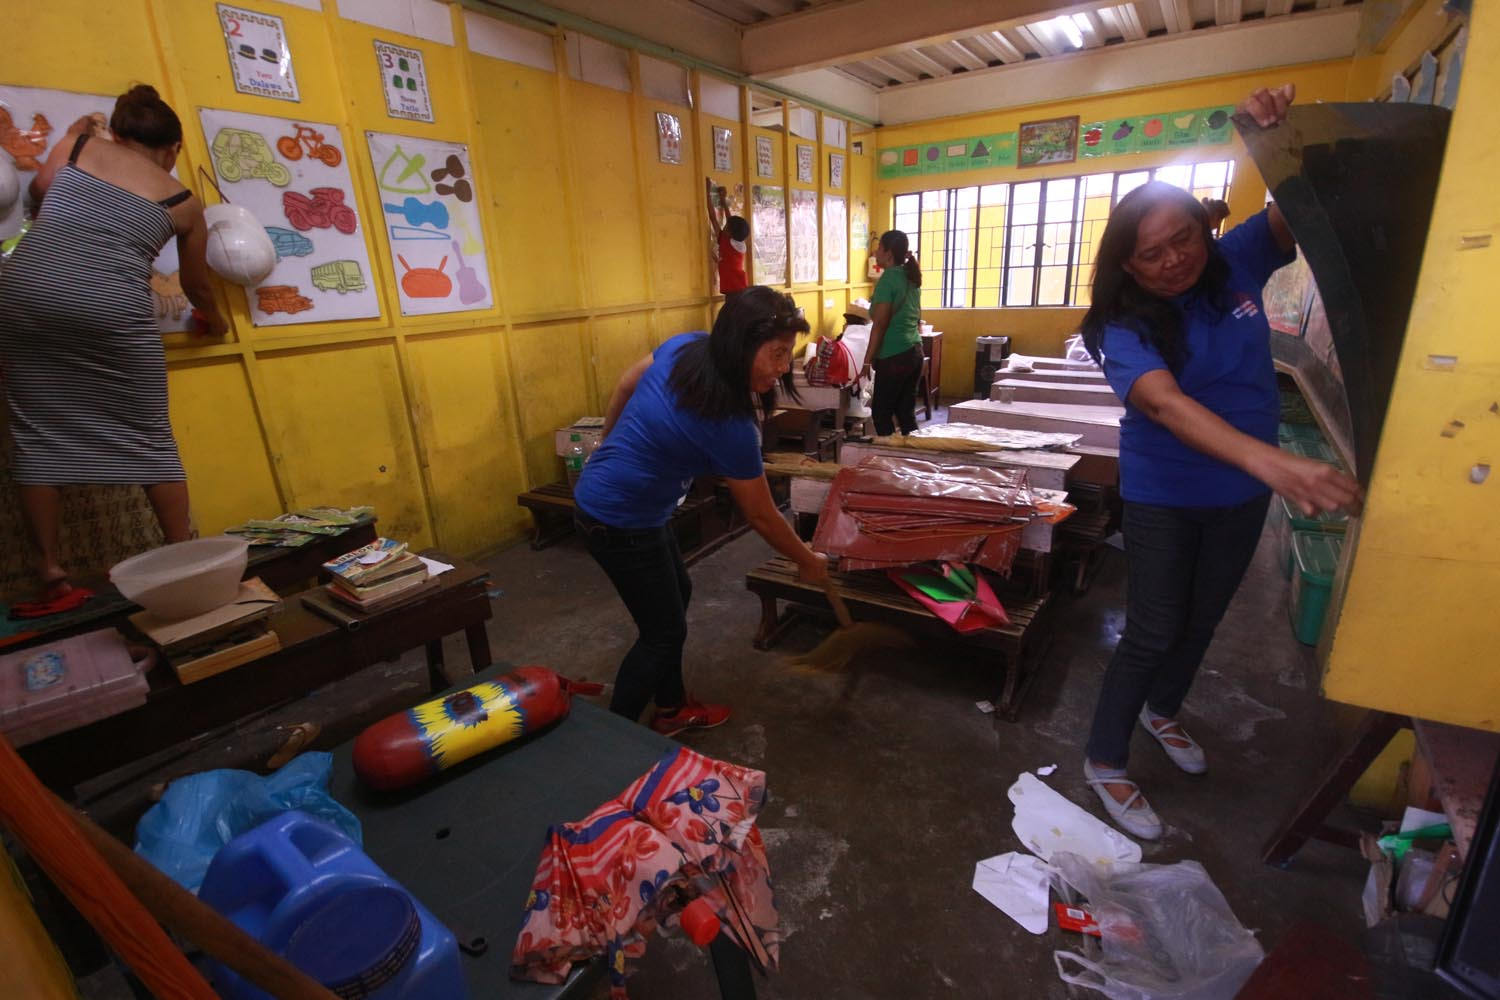 COMMUNITY EFFORT. Parents and teachers of Corazon Aquino Elementary School in Batasan, Quezon City join together in cleaning the classroom during the 2017 Brigada Eskuwela that signal the start of school classes. Photo by Darren Langit/ Rappler